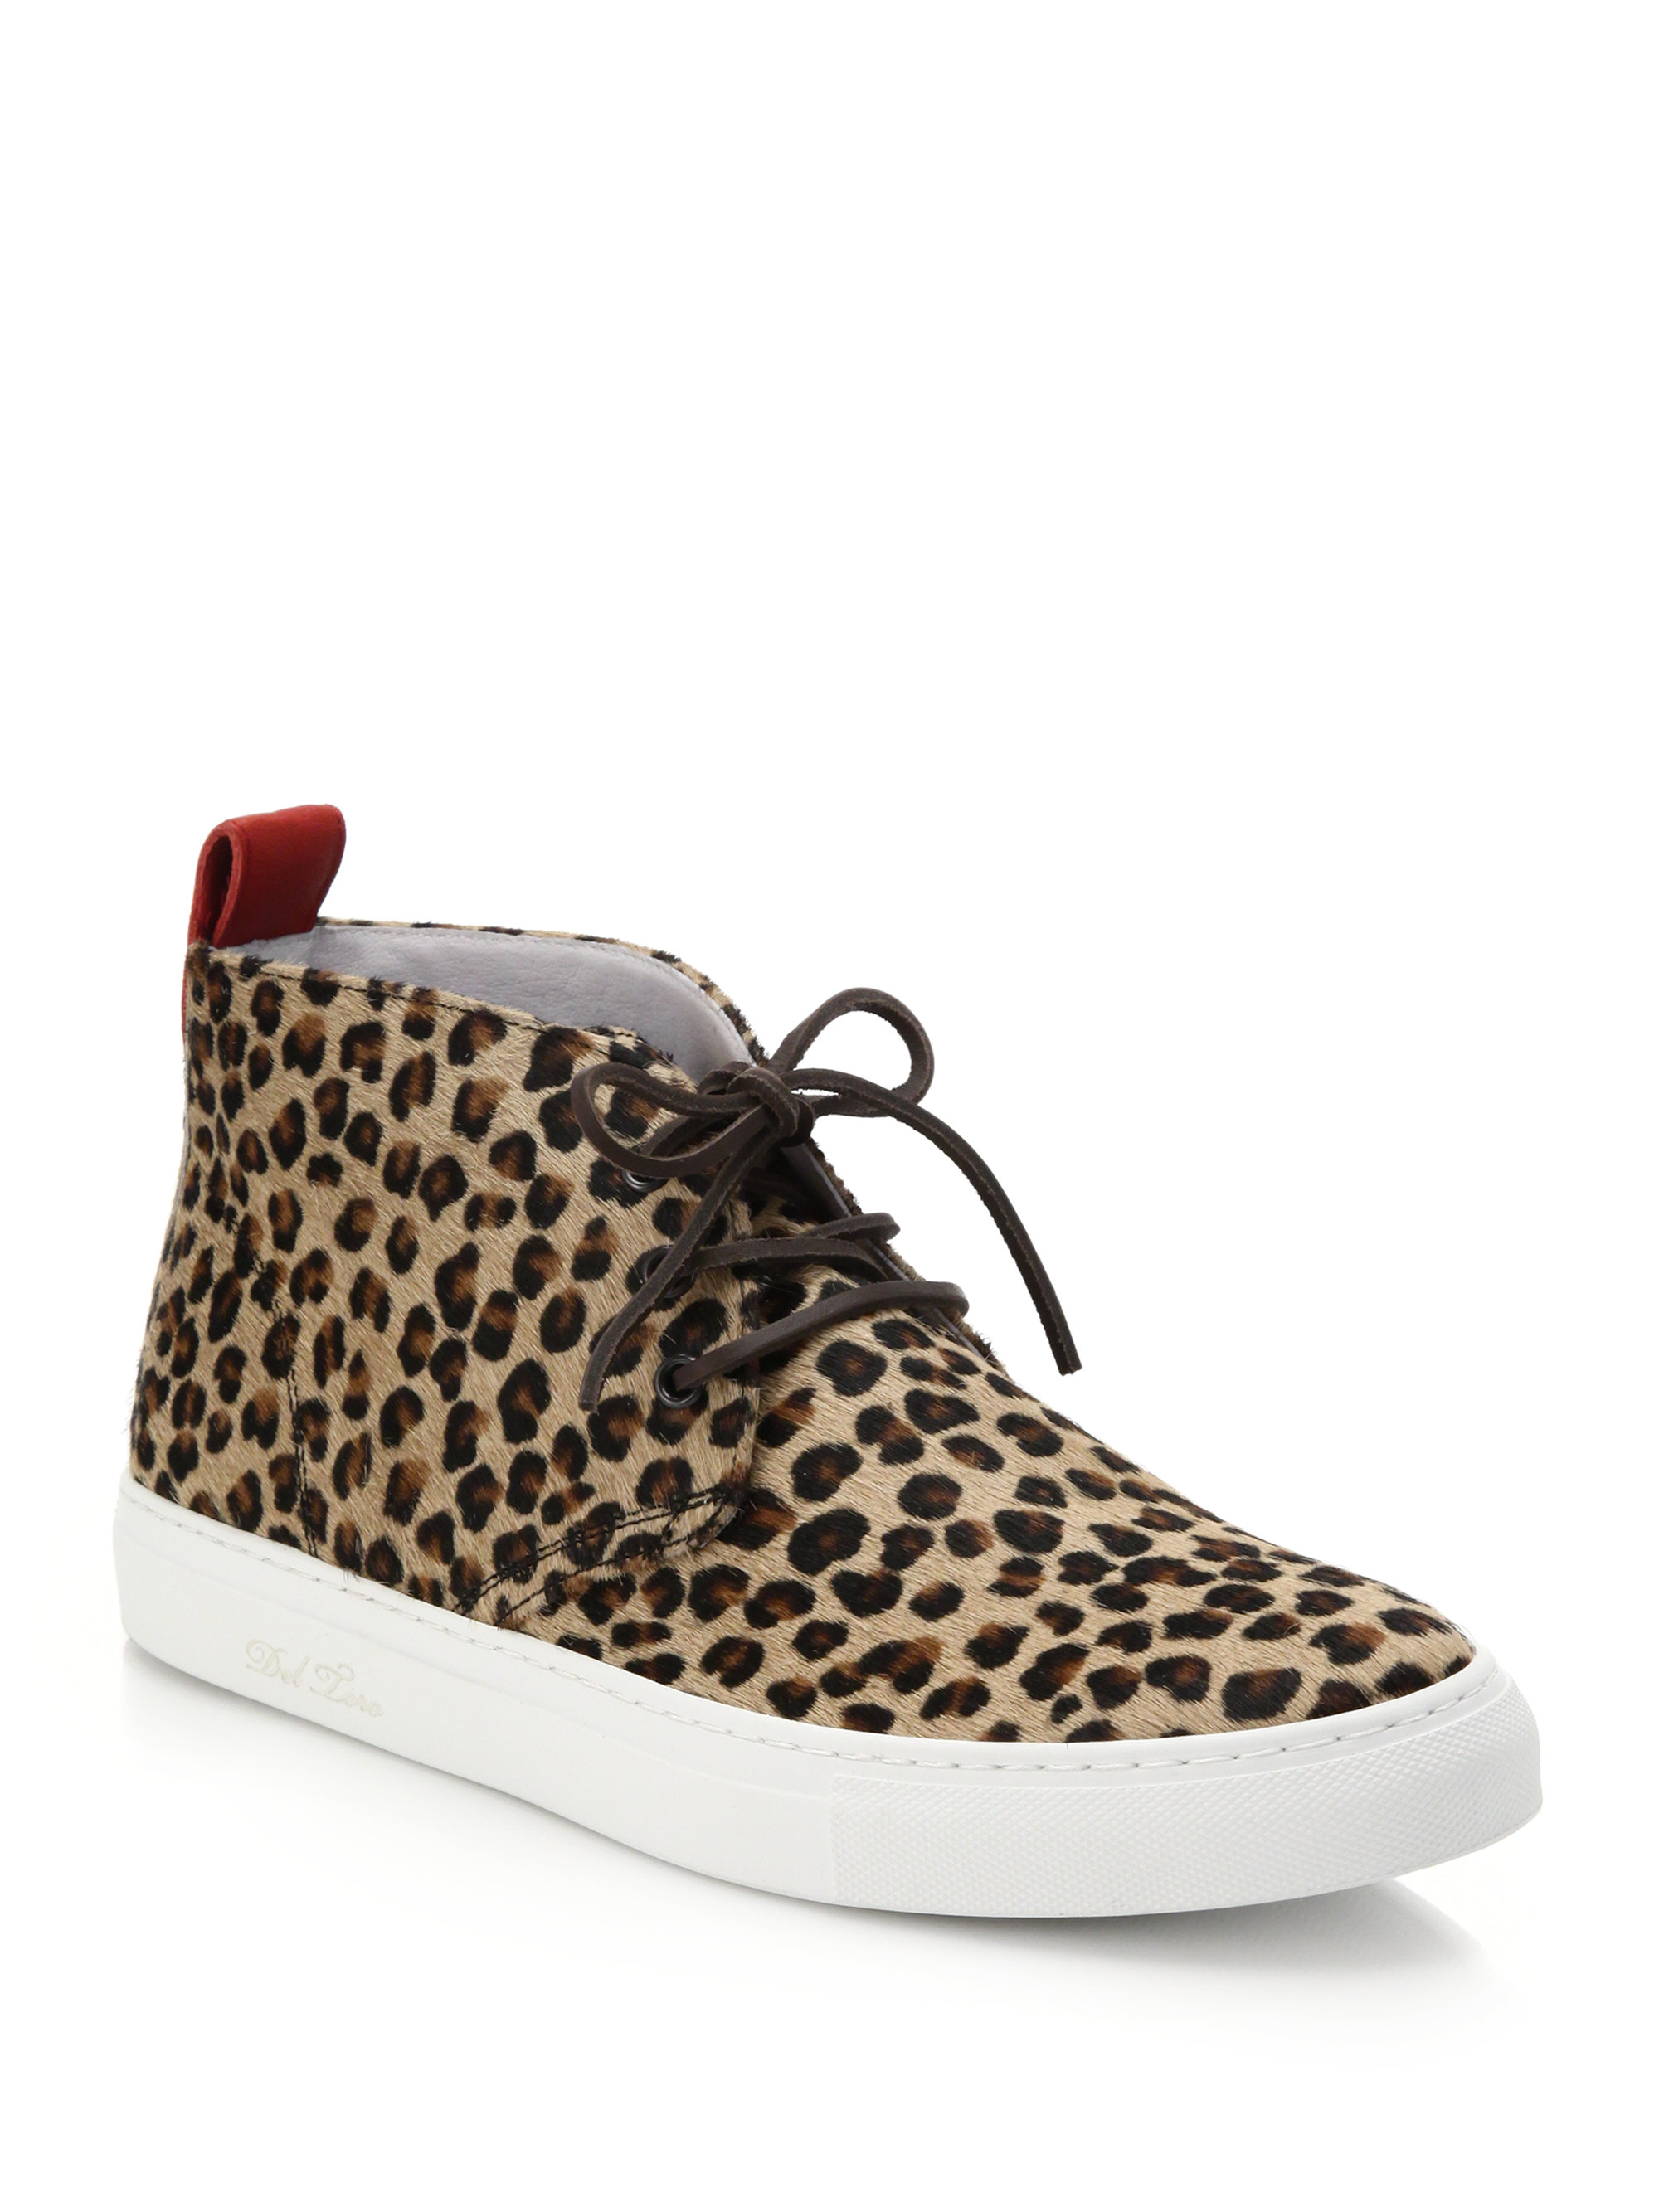 del toro leopard print pony hair chukka sneakers for men lyst. Black Bedroom Furniture Sets. Home Design Ideas